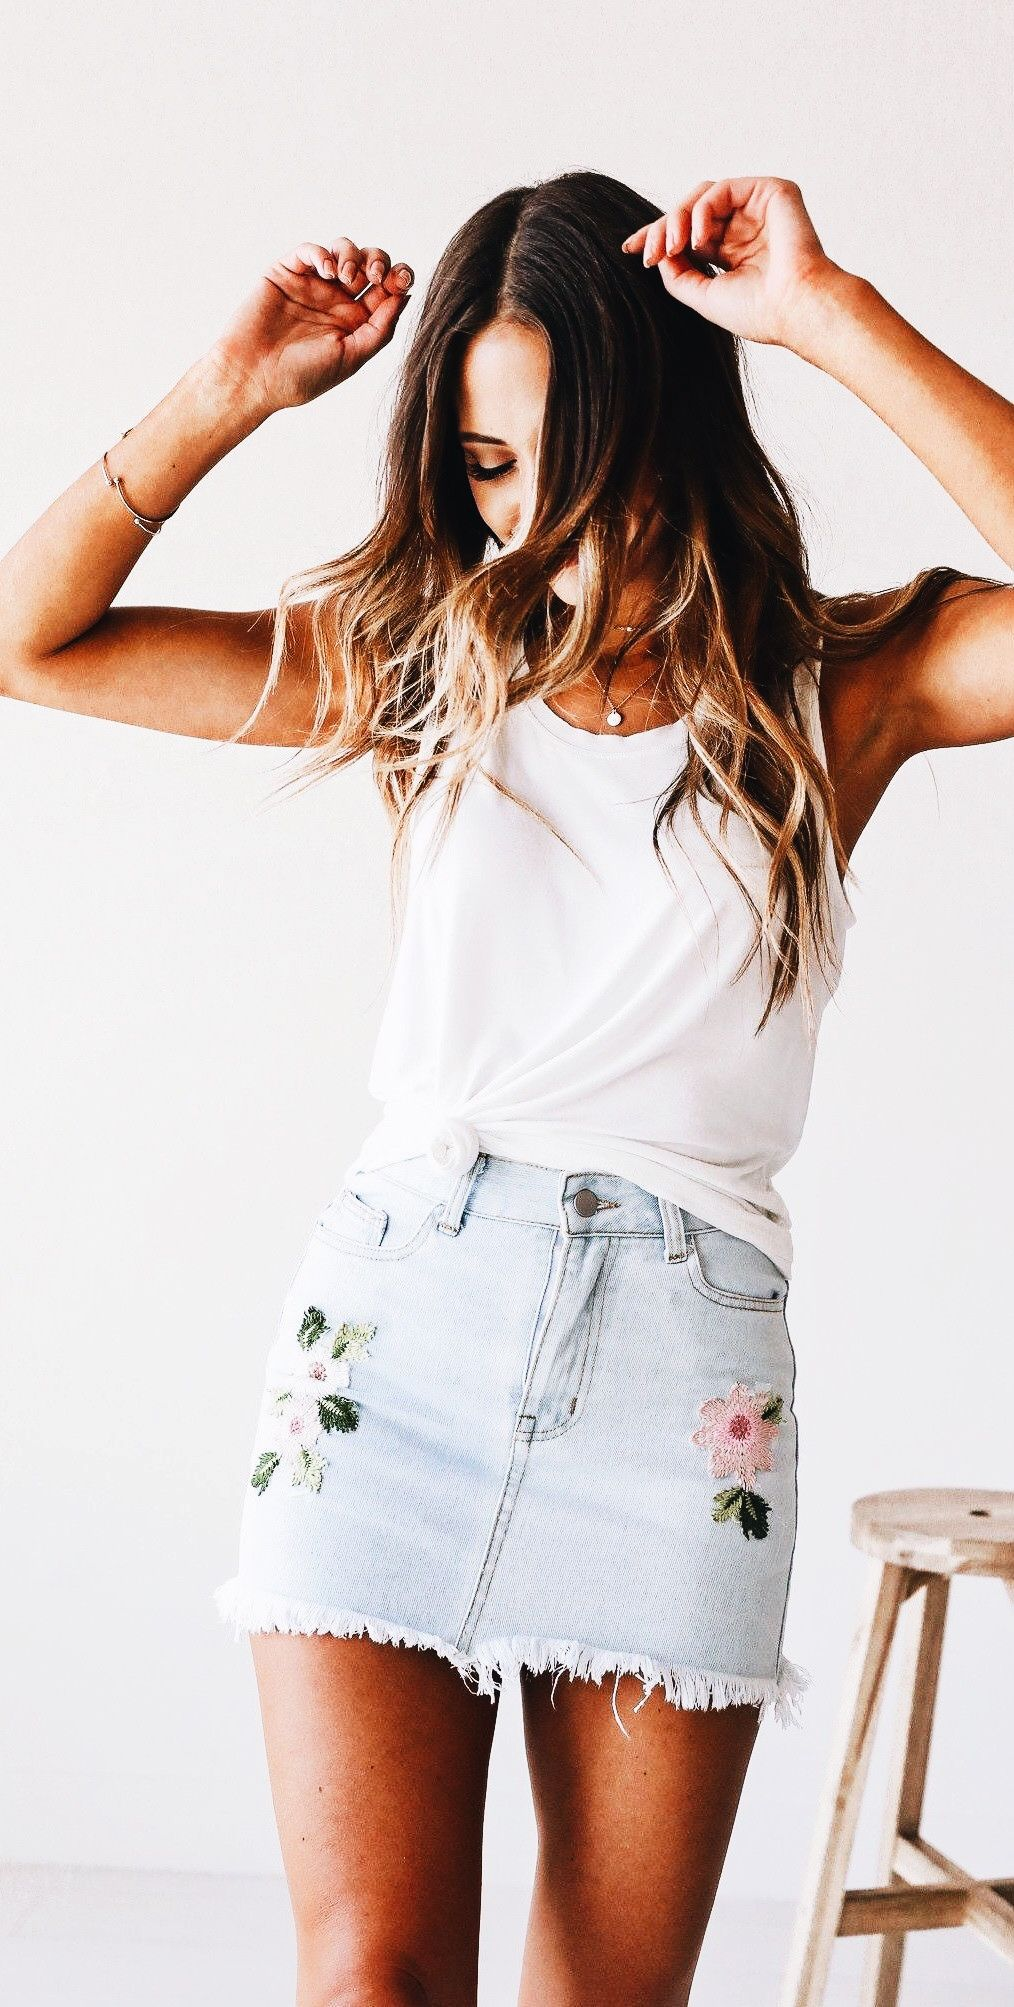 ee0cb3528b9 Denim skirt. Tied up tank top. White tank top outfit. Denim skirt outfit.  Jean skirt outfit.